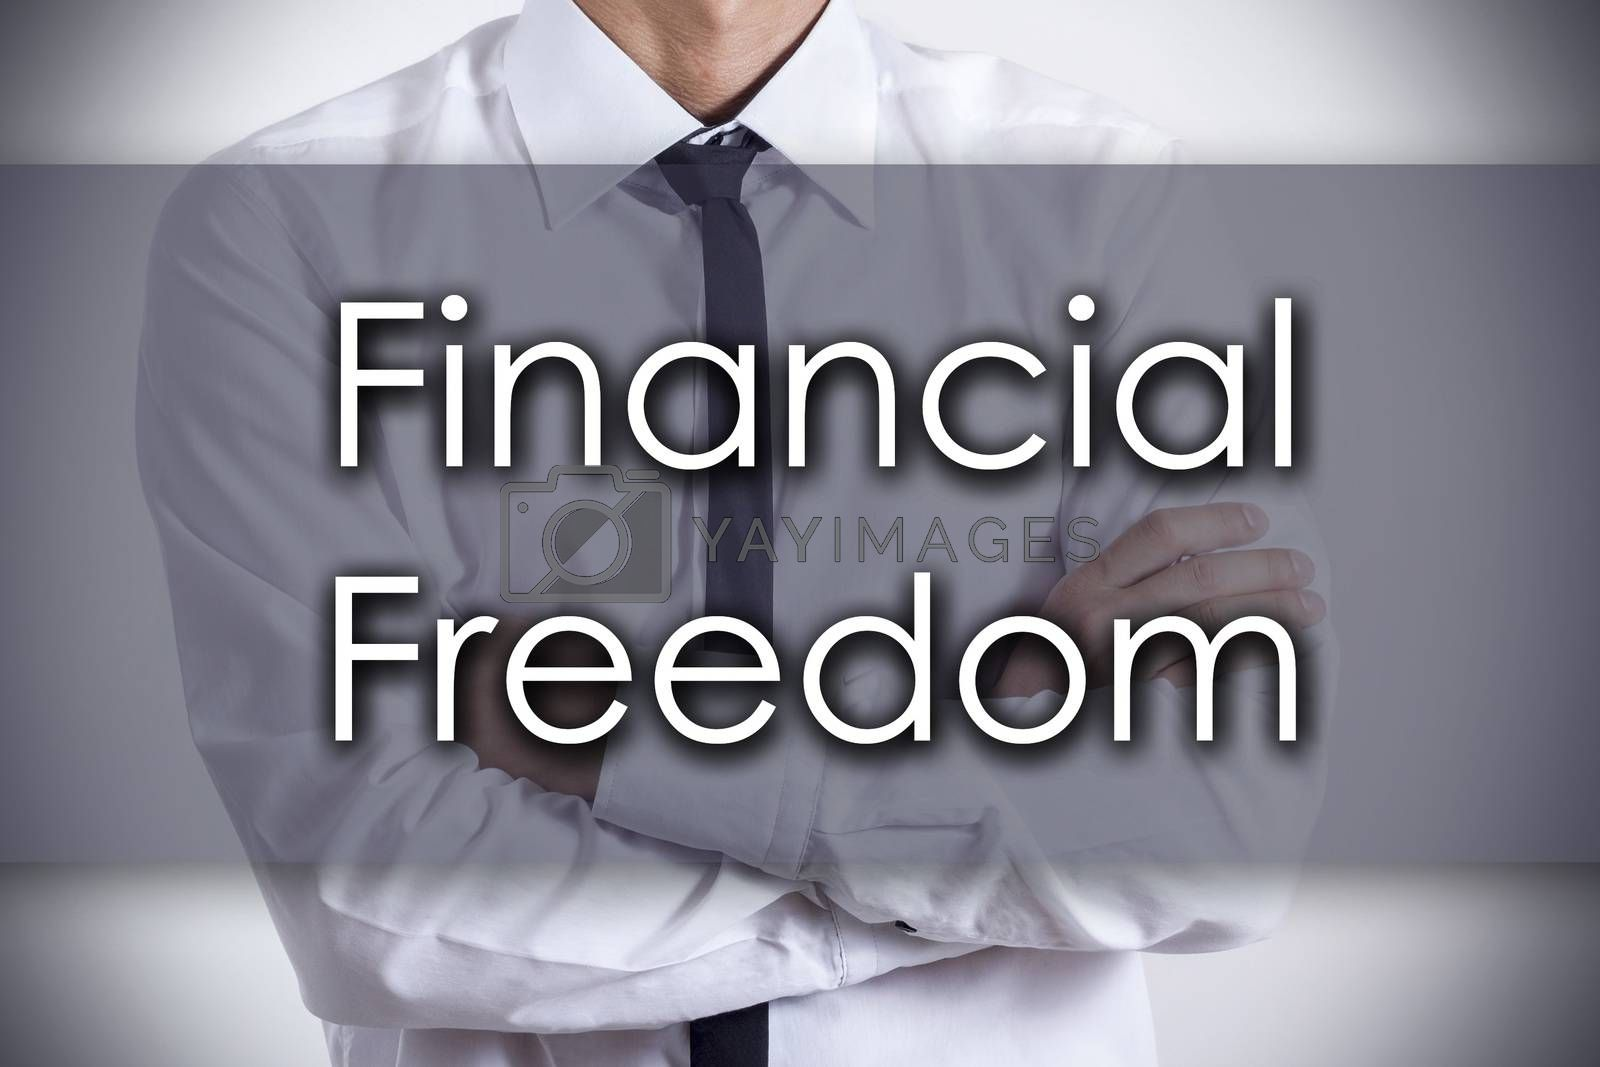 Financial Freedom - Young businessman with text - business conce by zsirosistvan